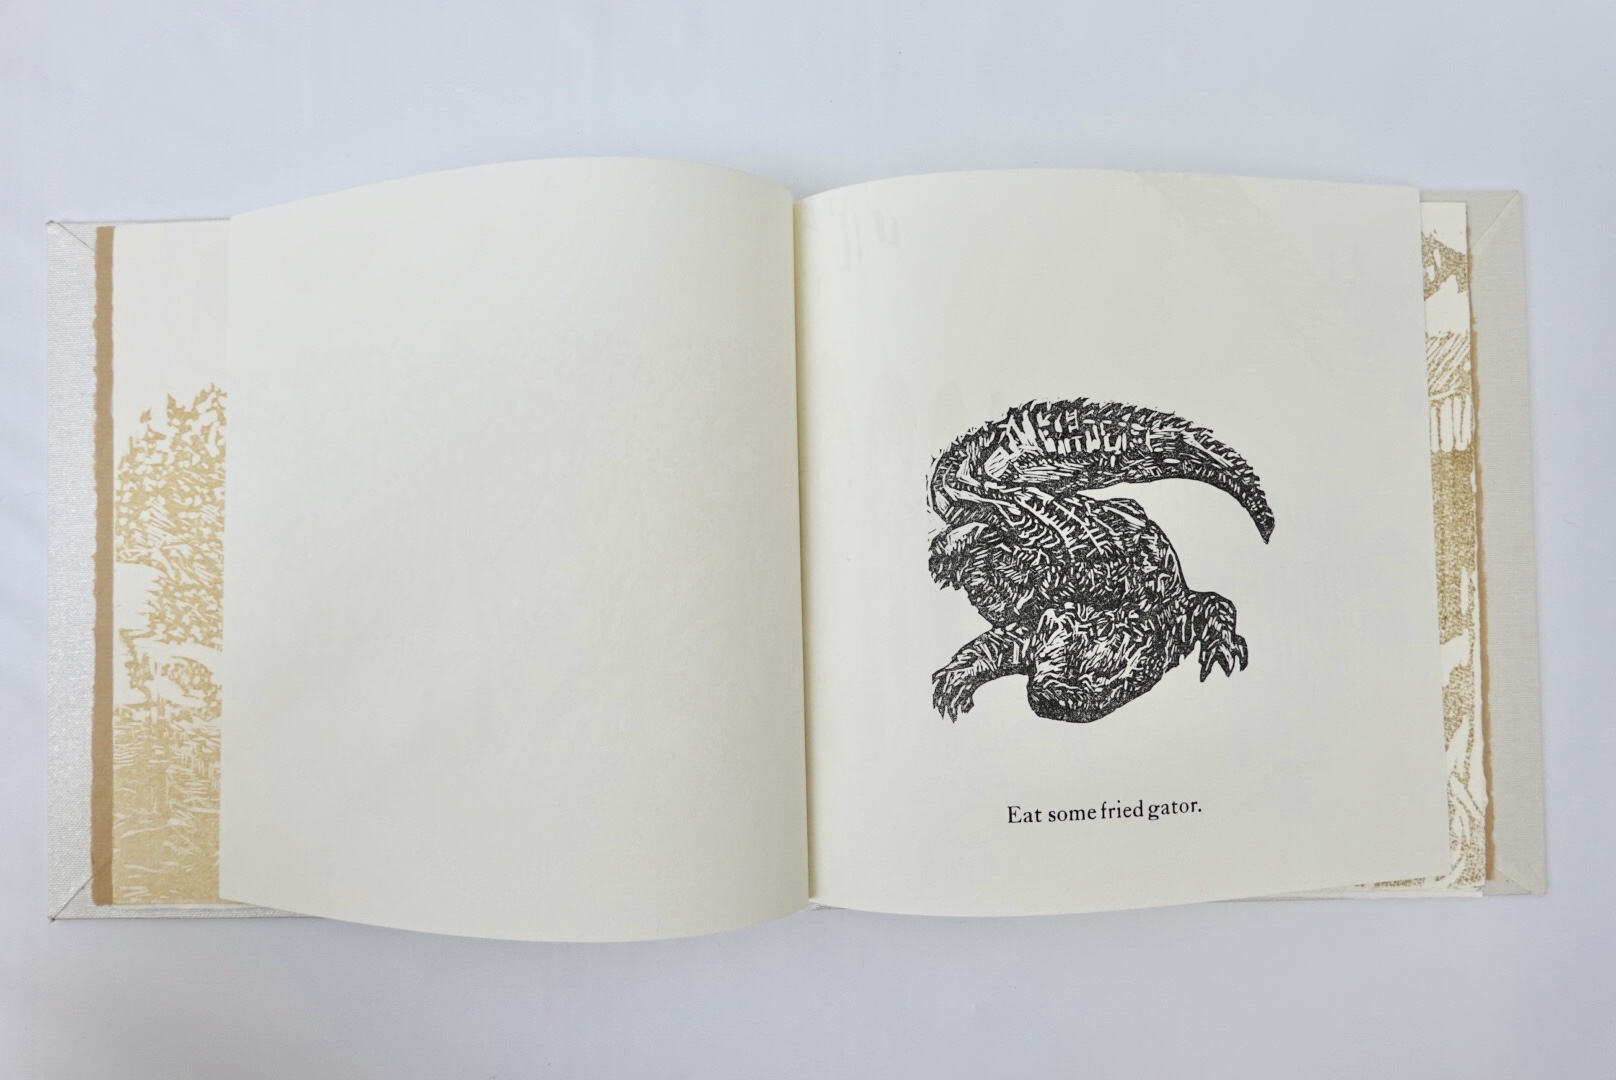 fourth page with alligator wood cut relief print